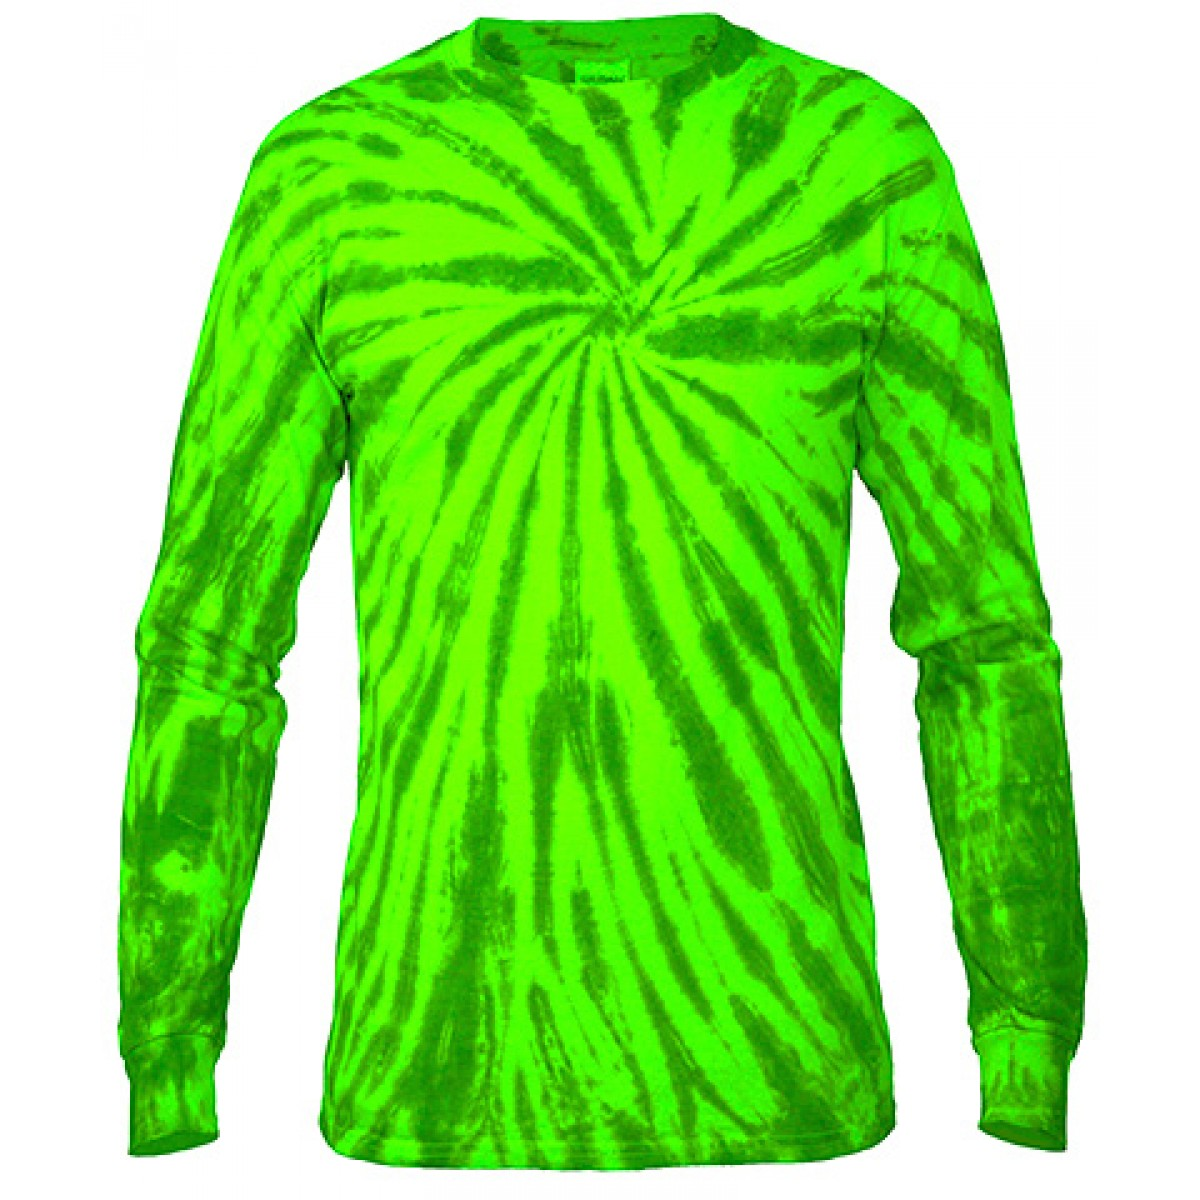 Multi Color Tie-Dye Long Sleeve Shirt -Green-YM